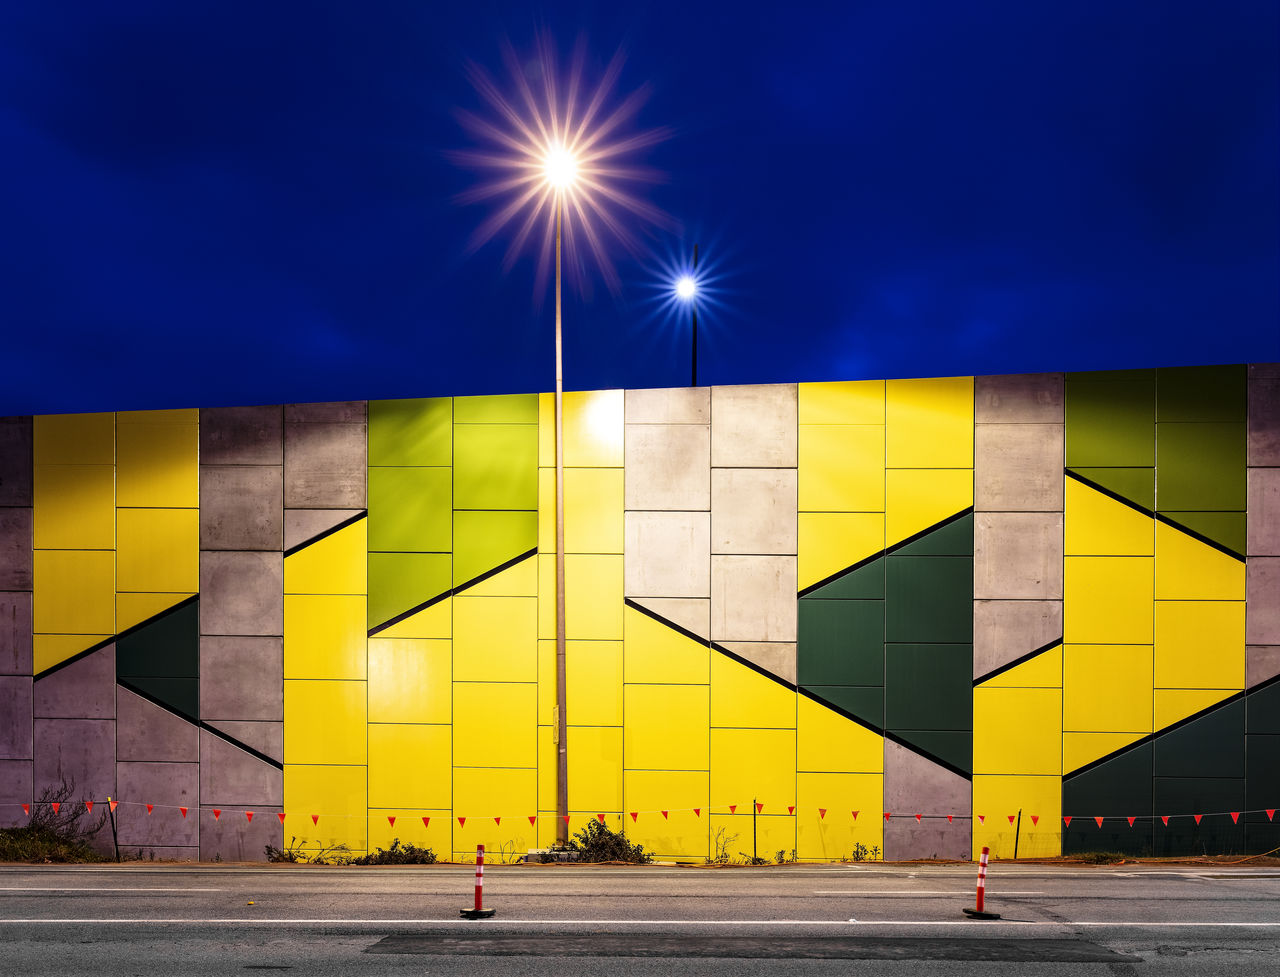 architecture, built structure, street, sky, yellow, city, road, building exterior, transportation, nature, illuminated, outdoors, real people, incidental people, street light, lighting equipment, direction, wall - building feature, multi colored